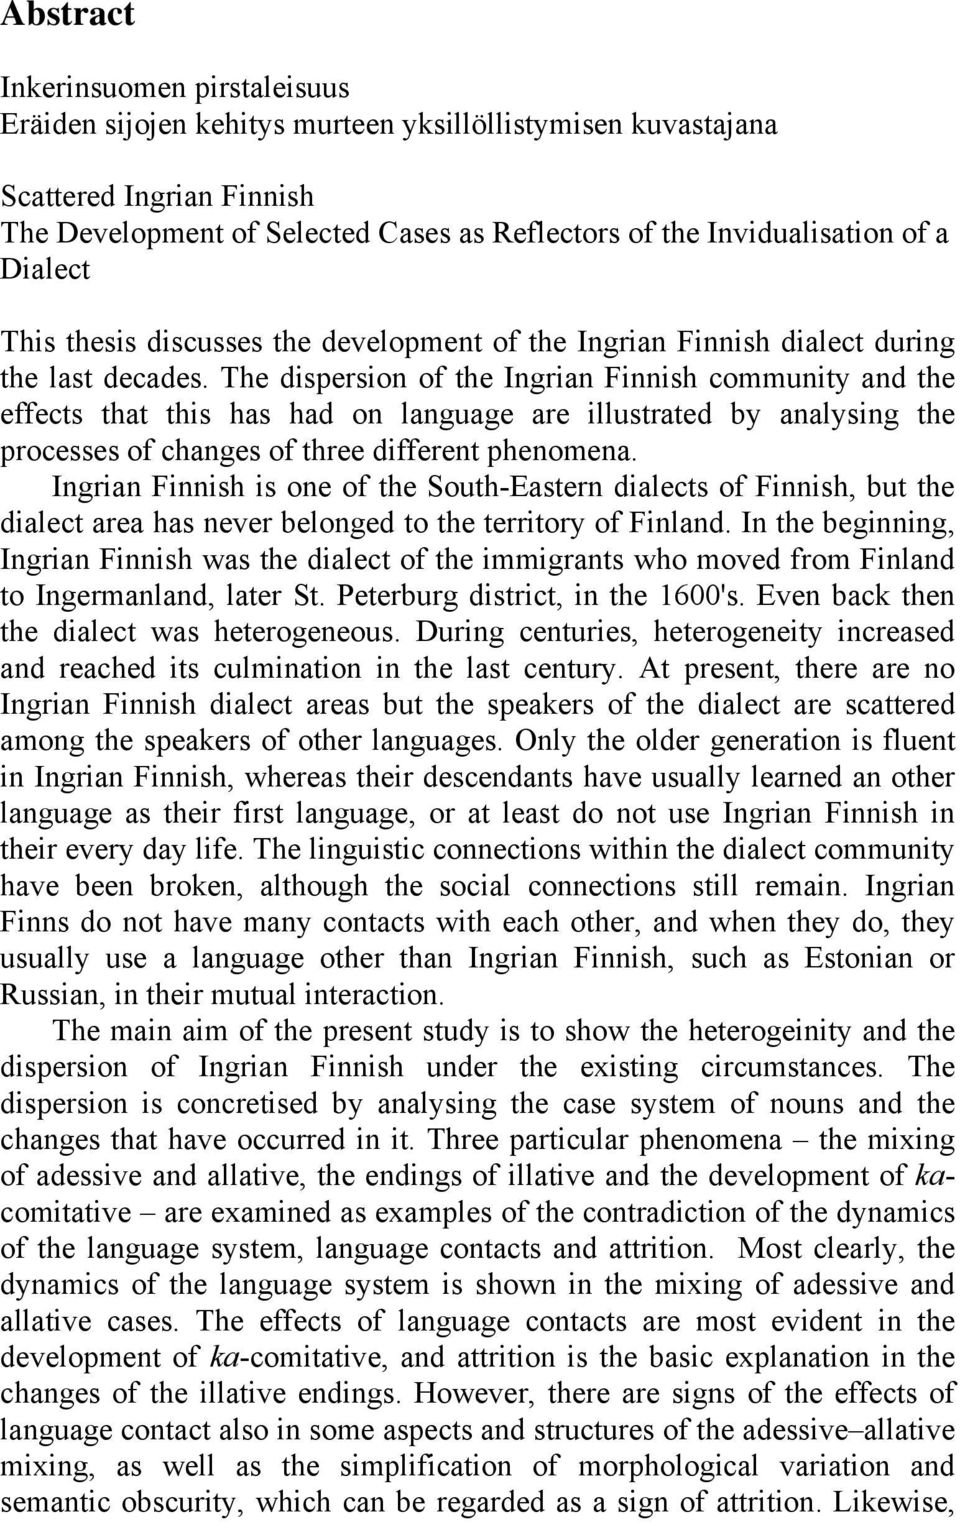 The dispersion of the Ingrian Finnish community and the effects that this has had on language are illustrated by analysing the processes of changes of three different phenomena.